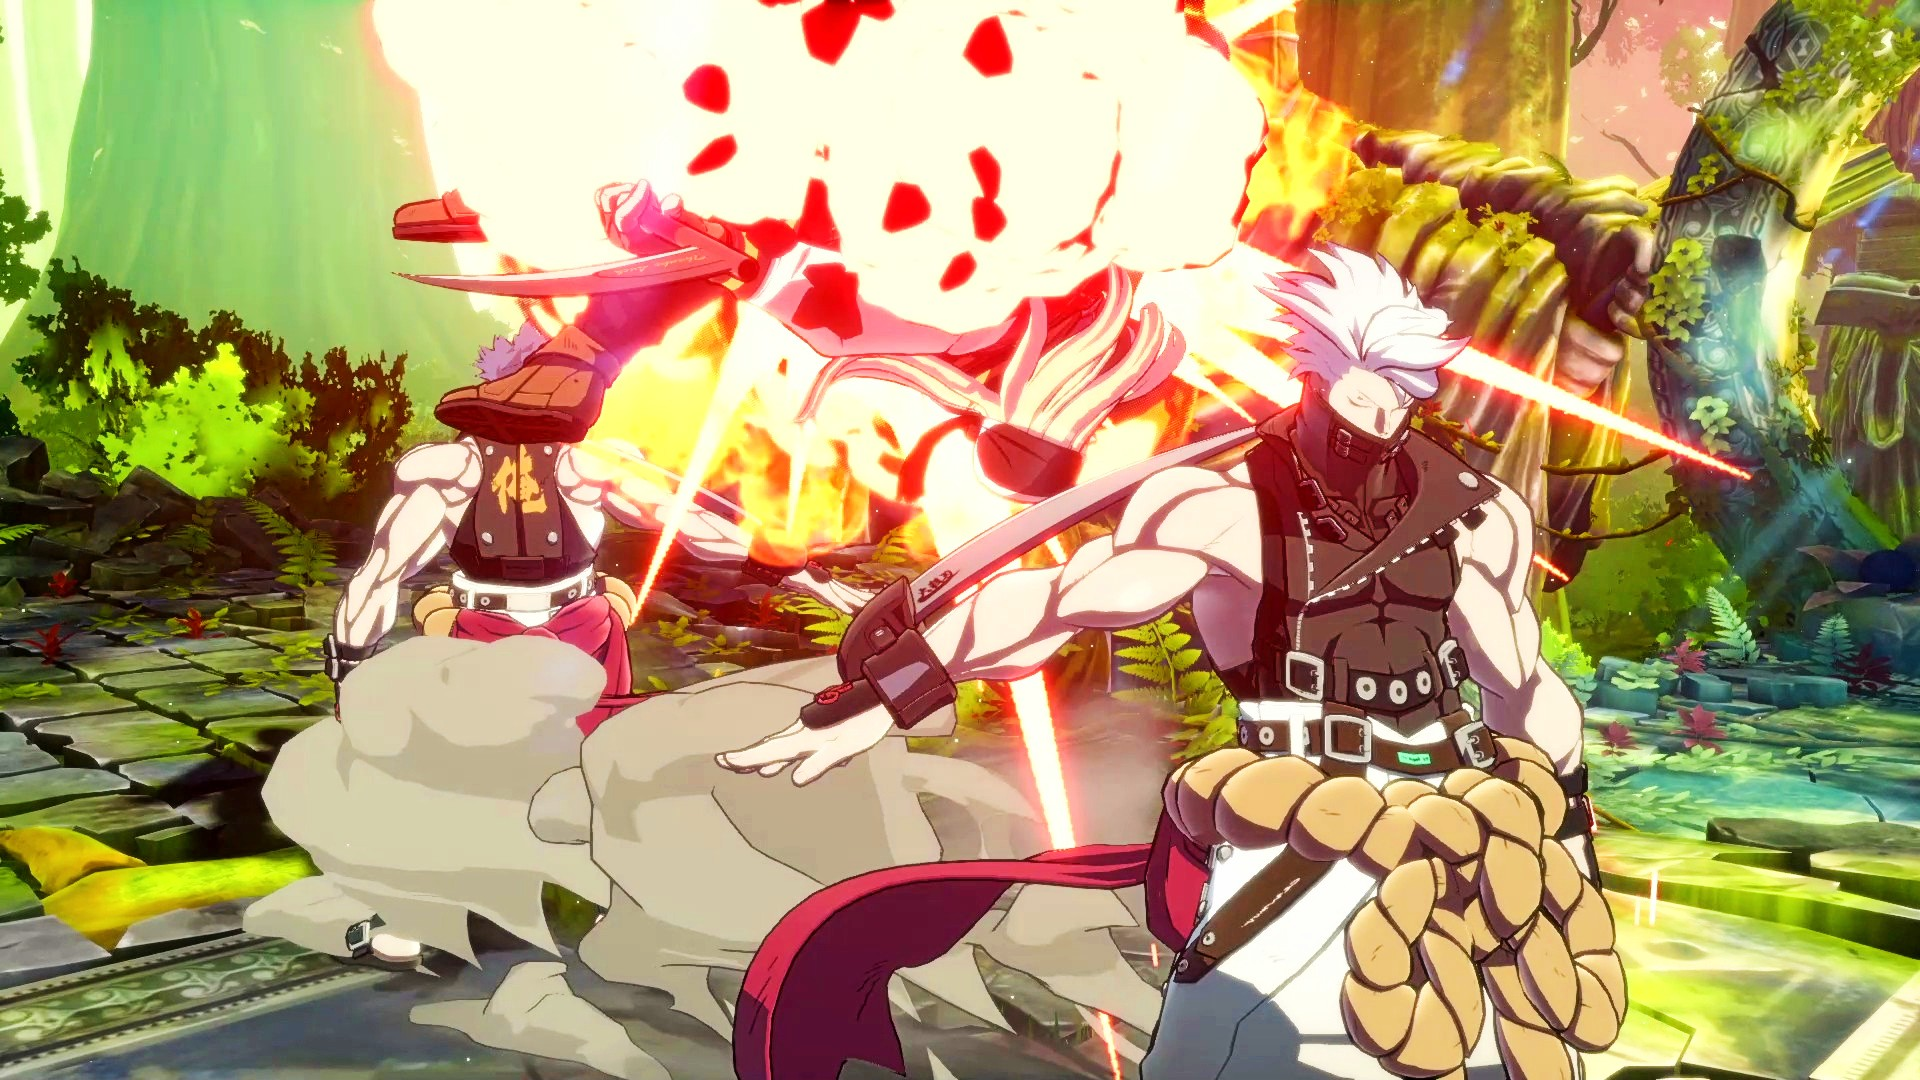 Anime fighting game Guilty Gear Strive delayed into June